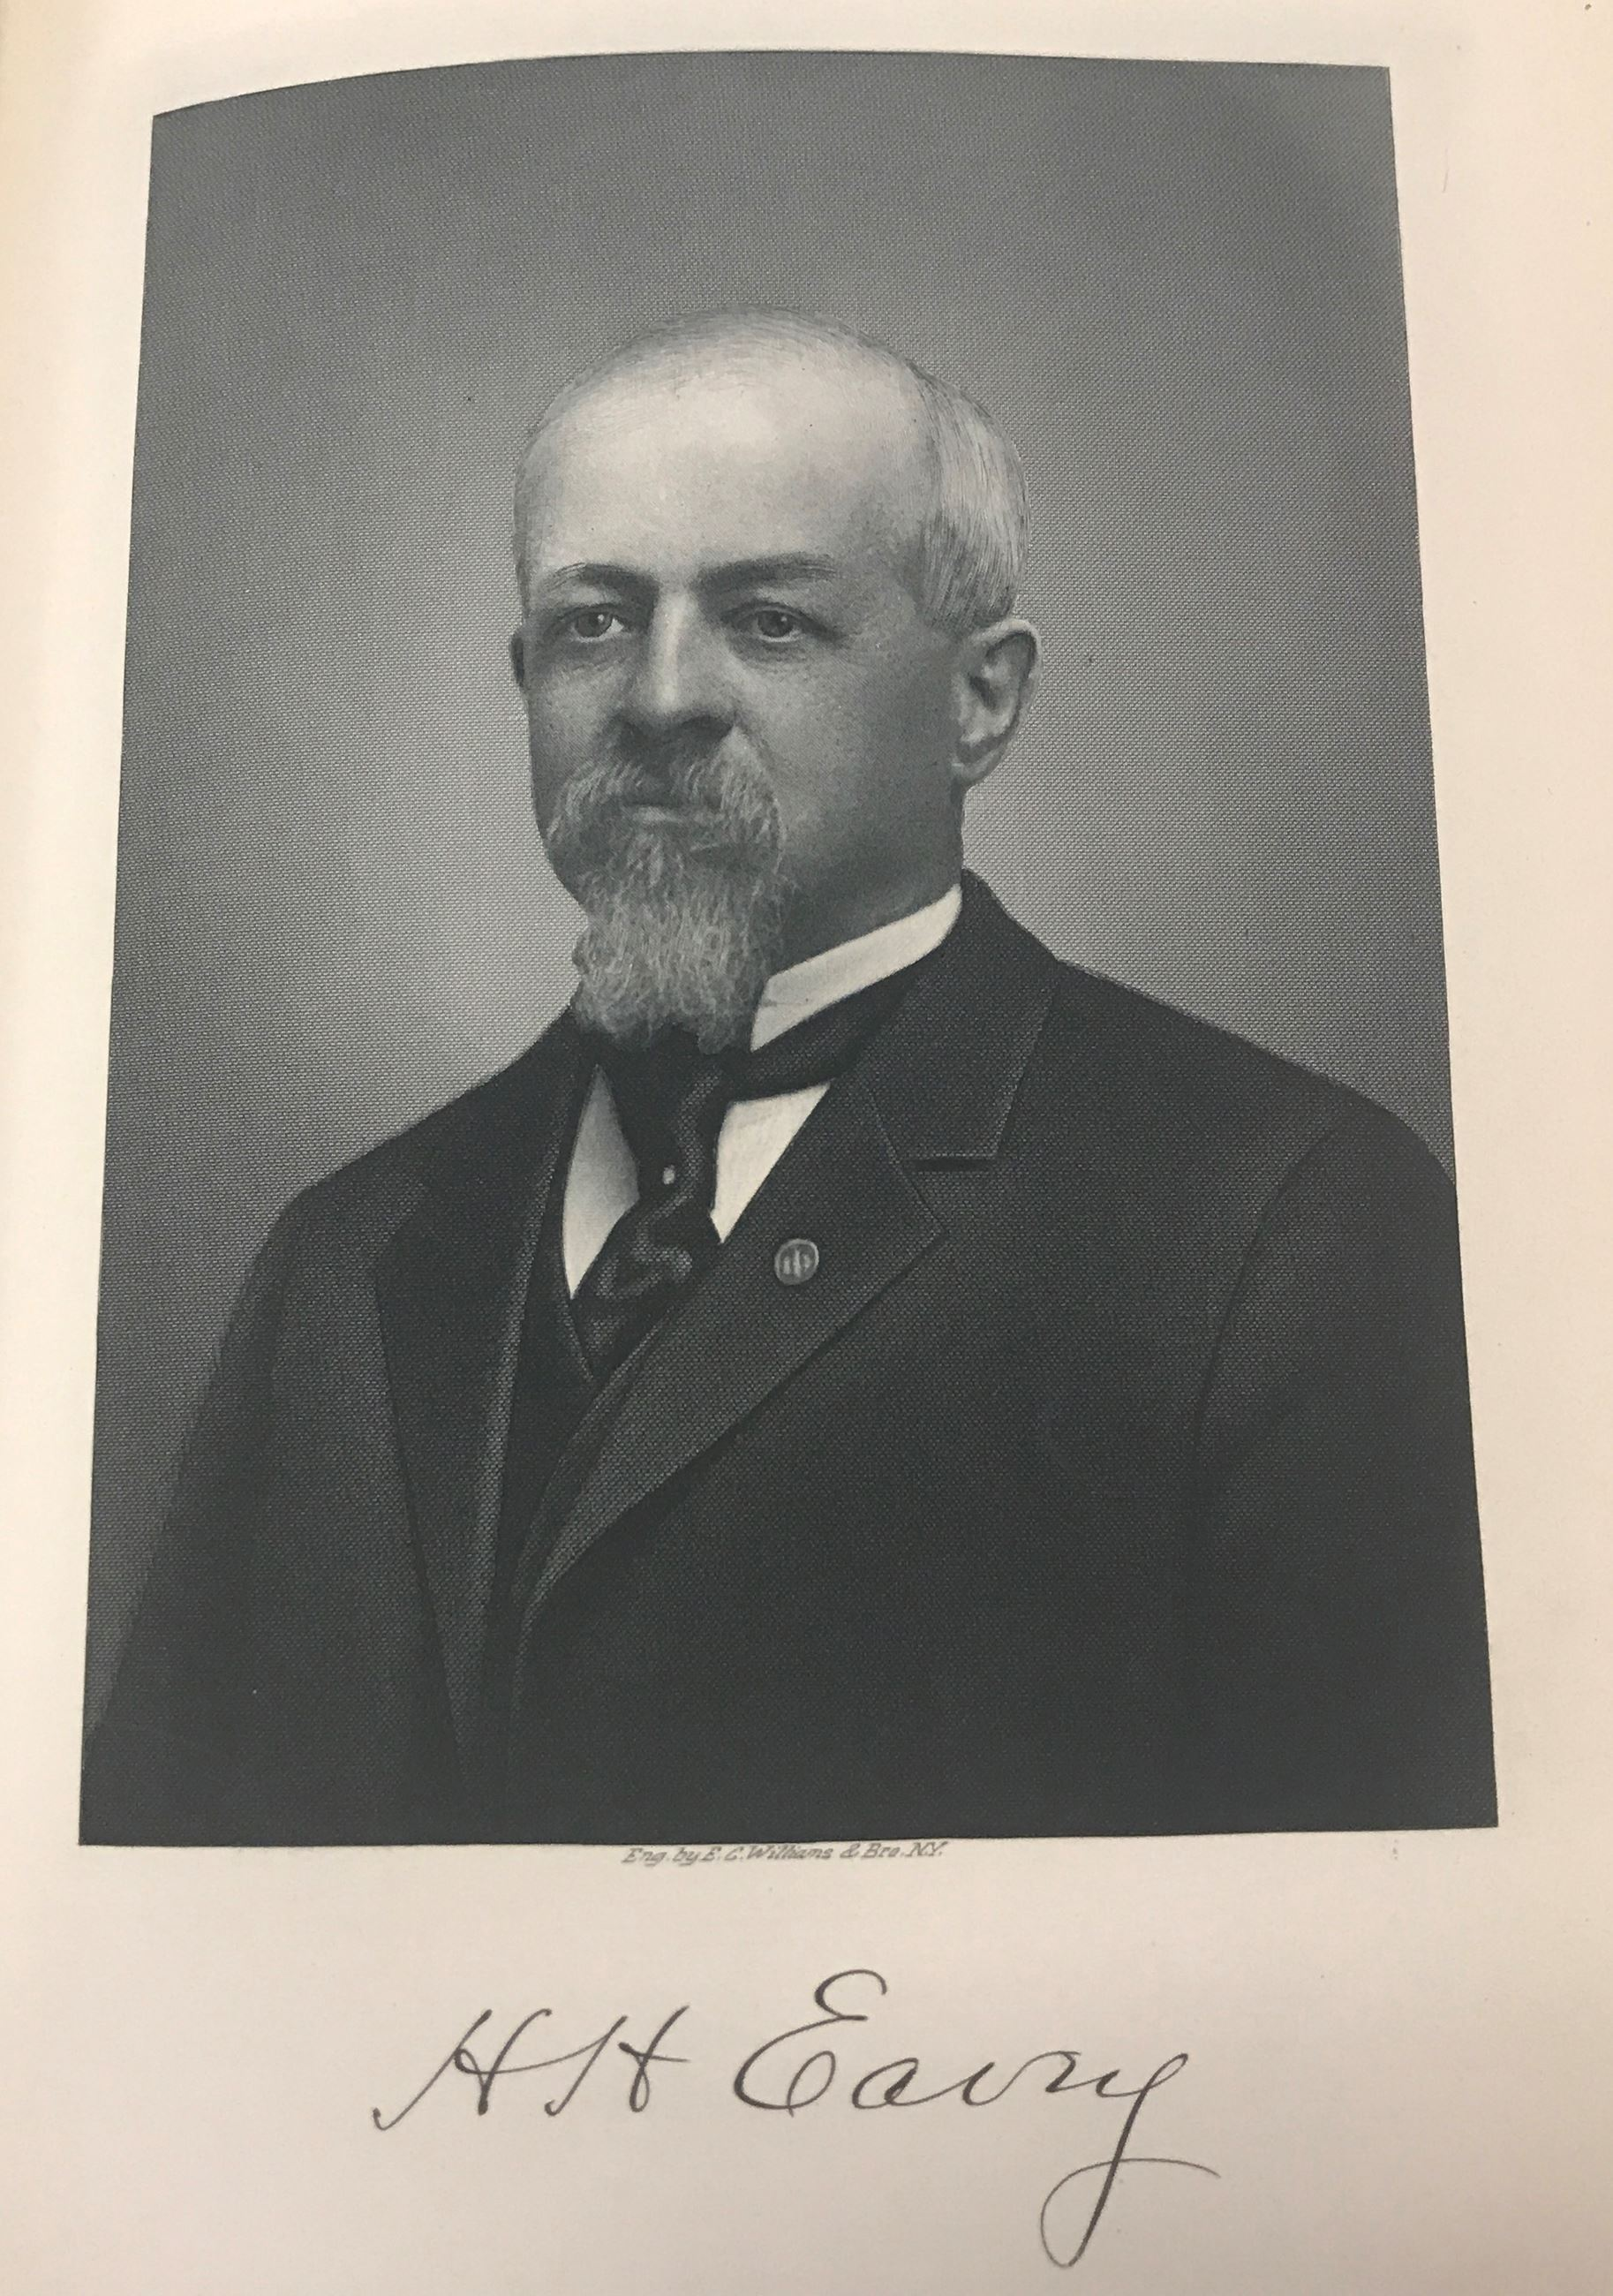 Image of H.H. Eavey from History of Greene County Ohio book